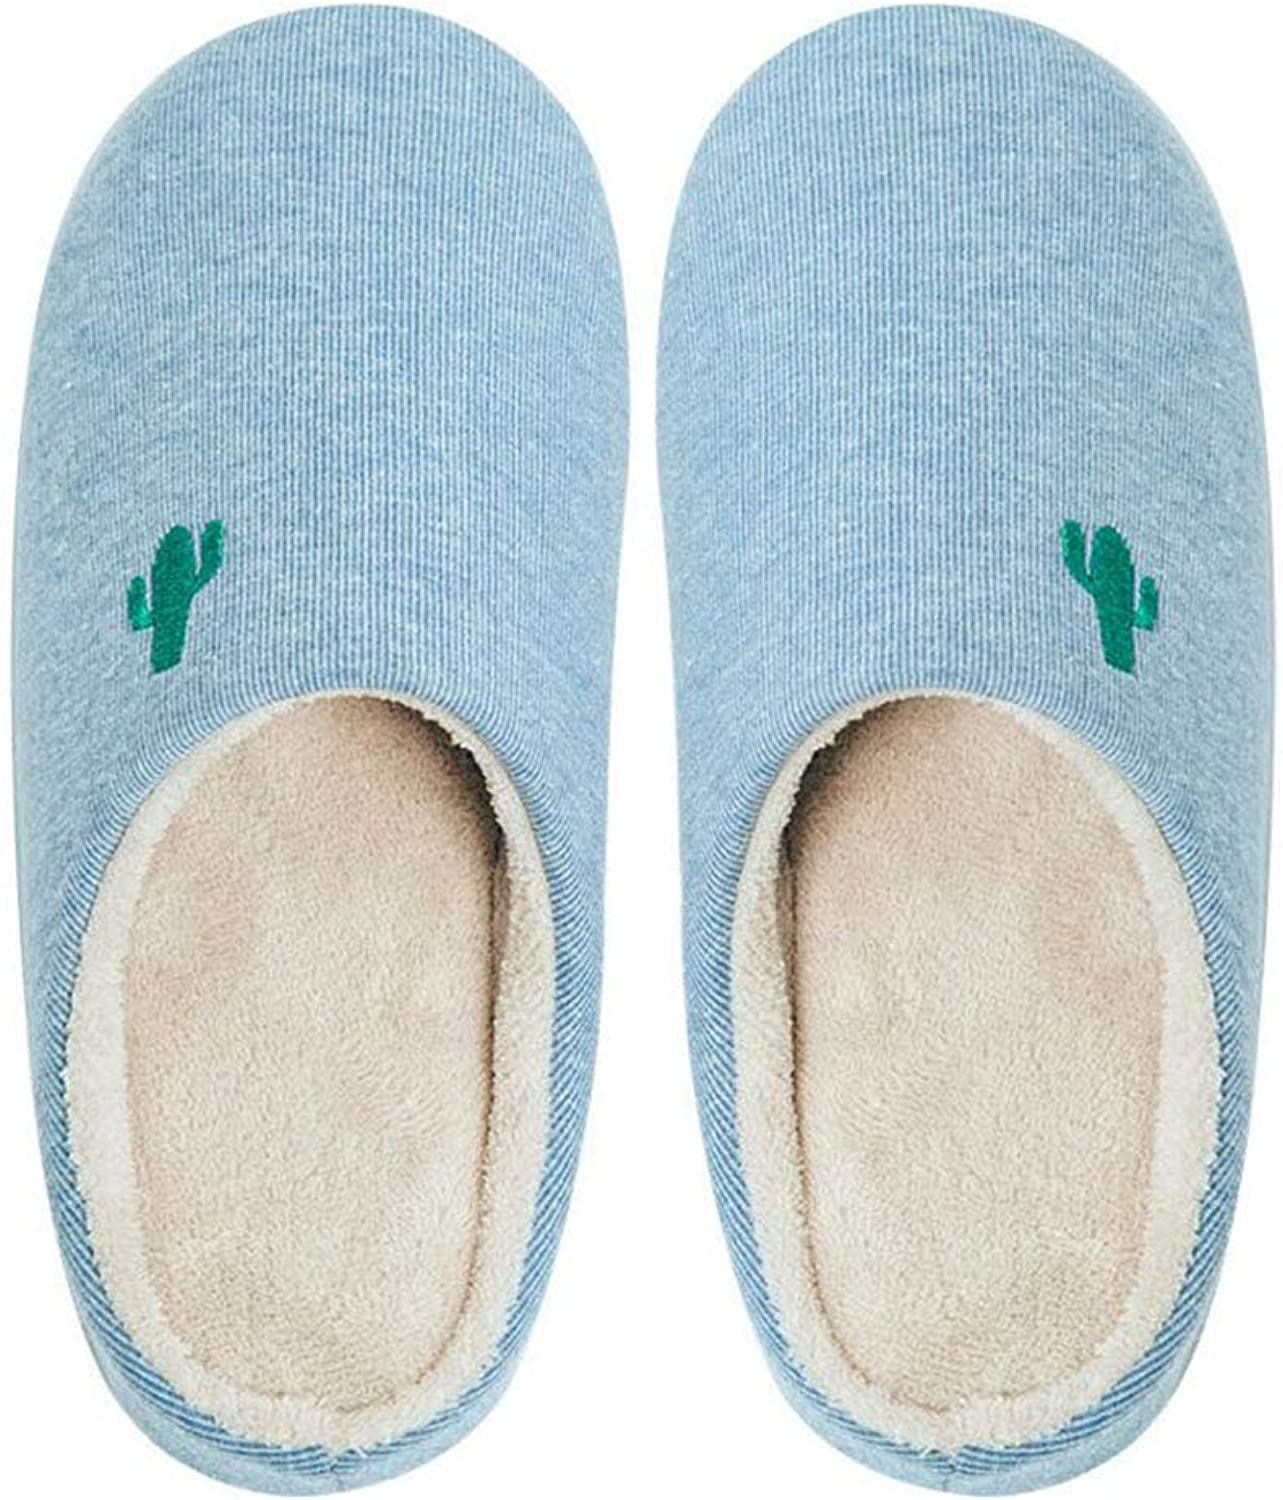 Home Slippers, Winter Embroidery Non-Slip Thick-Soled Cotton Slippers for Men and Women Warm Home Home Indoor Mute Couple Comfortable Cotton Slippers,lightbluee,40